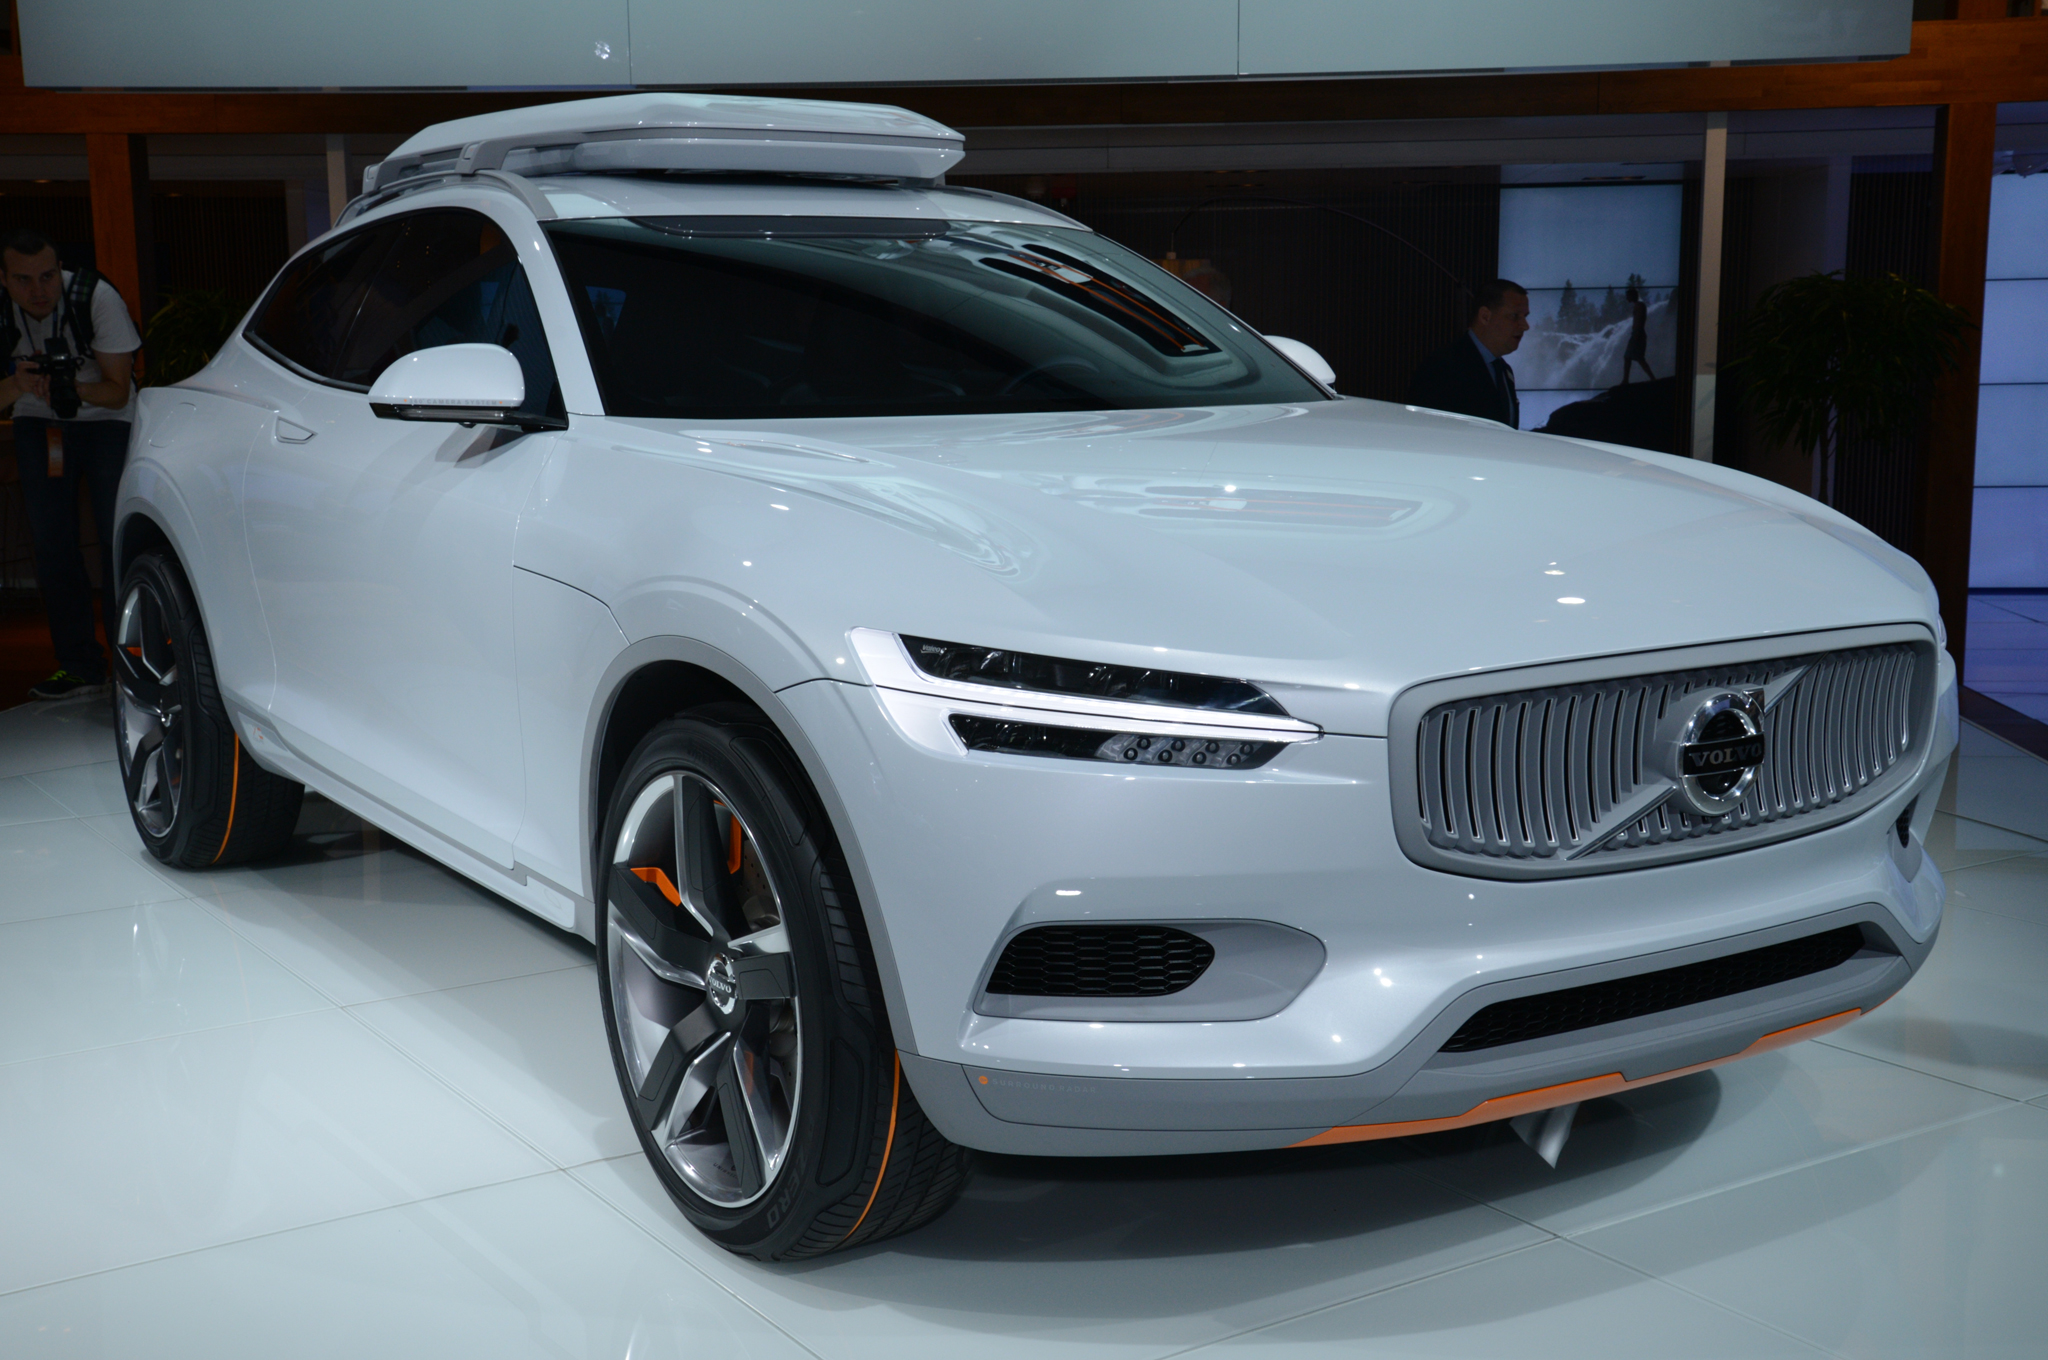 Volvo to Withdraw From Most Auto Shows, Exit Motorsports